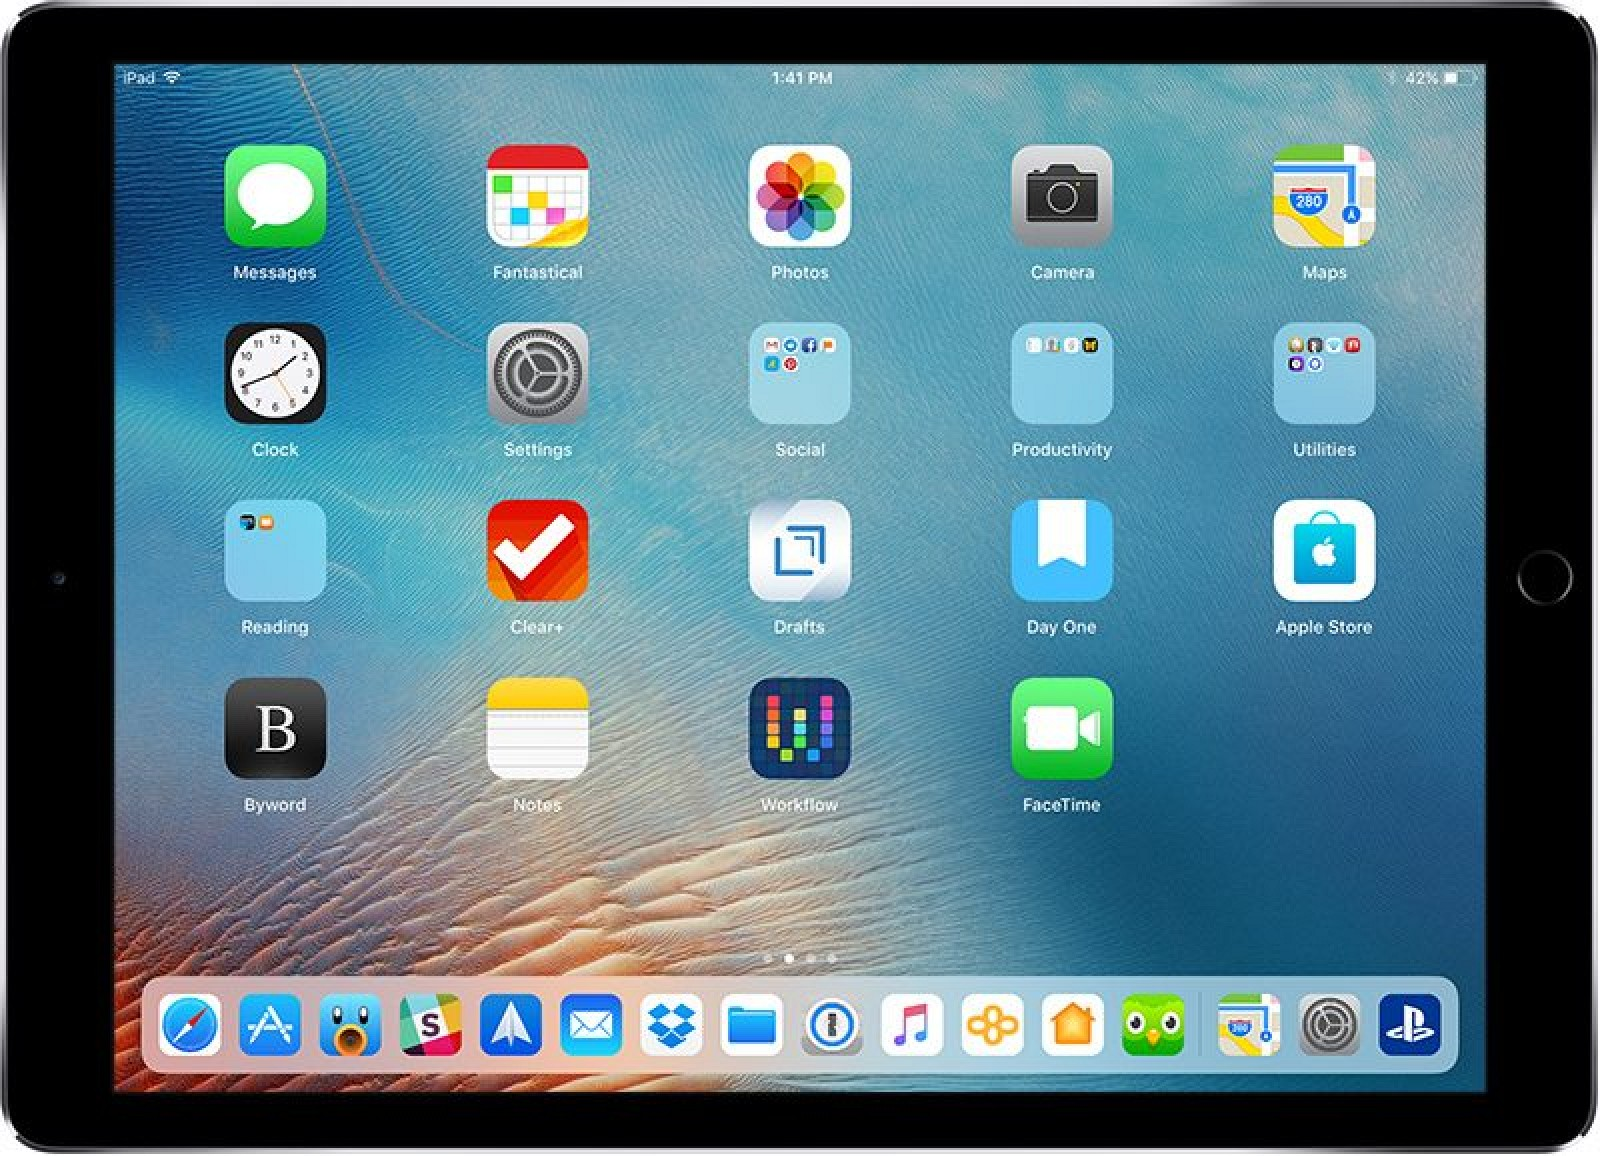 How to Access Control Center and Home Screen in iOS 12 ...